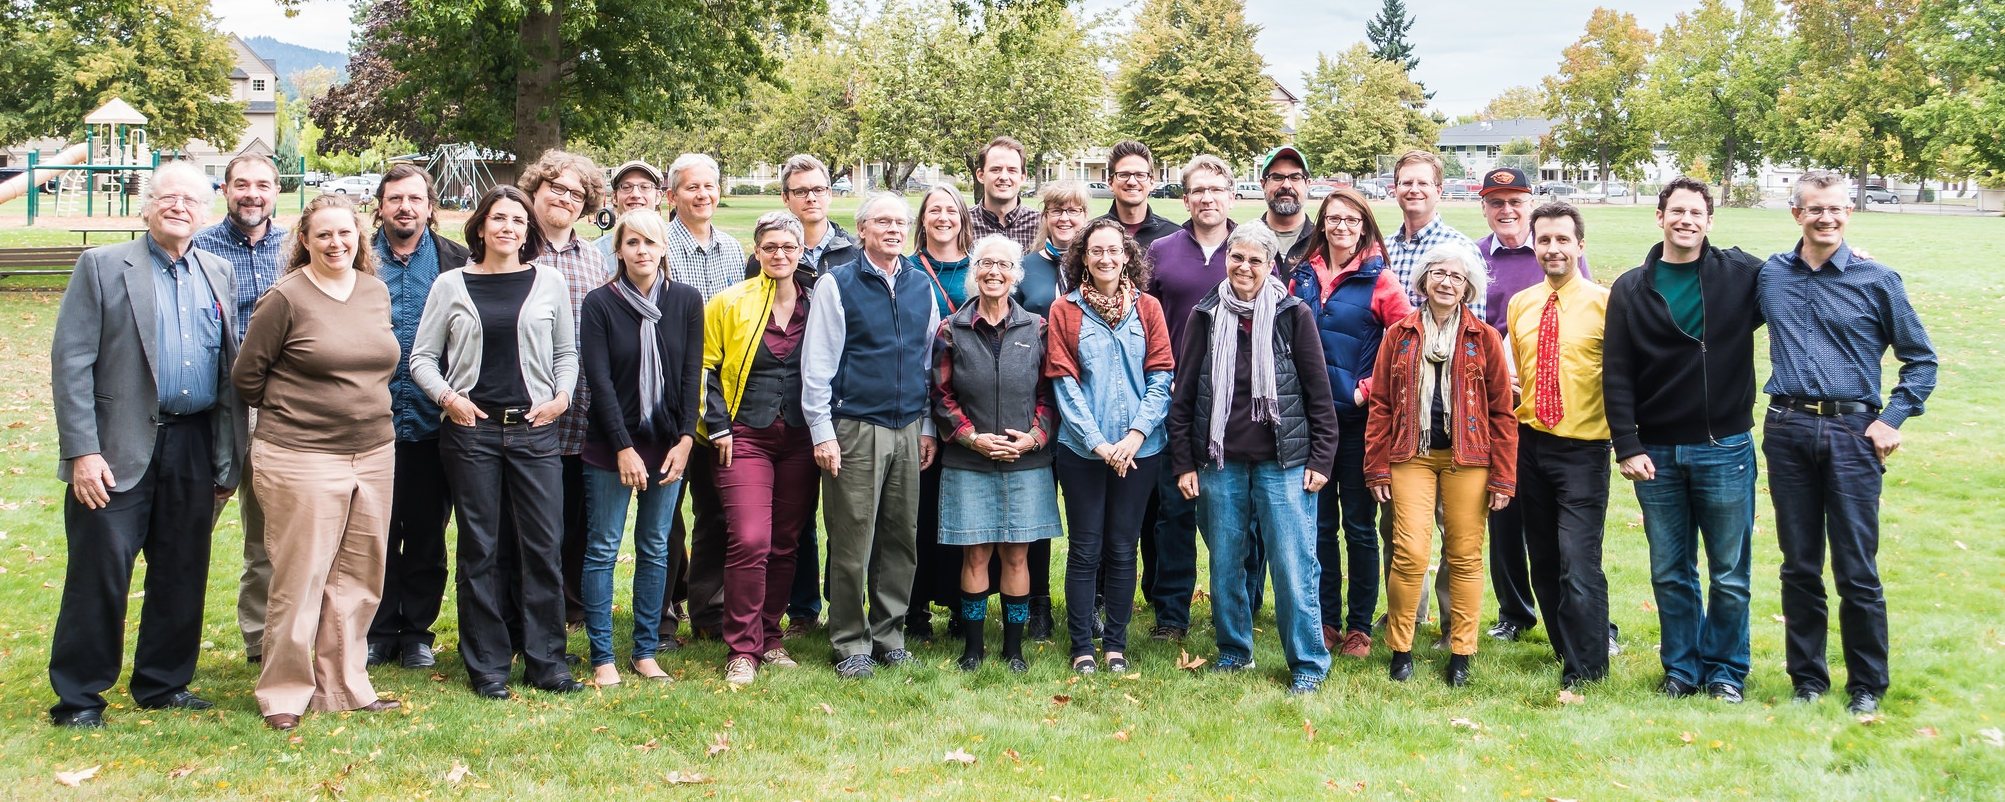 SHPR Faculty and Staff 2015